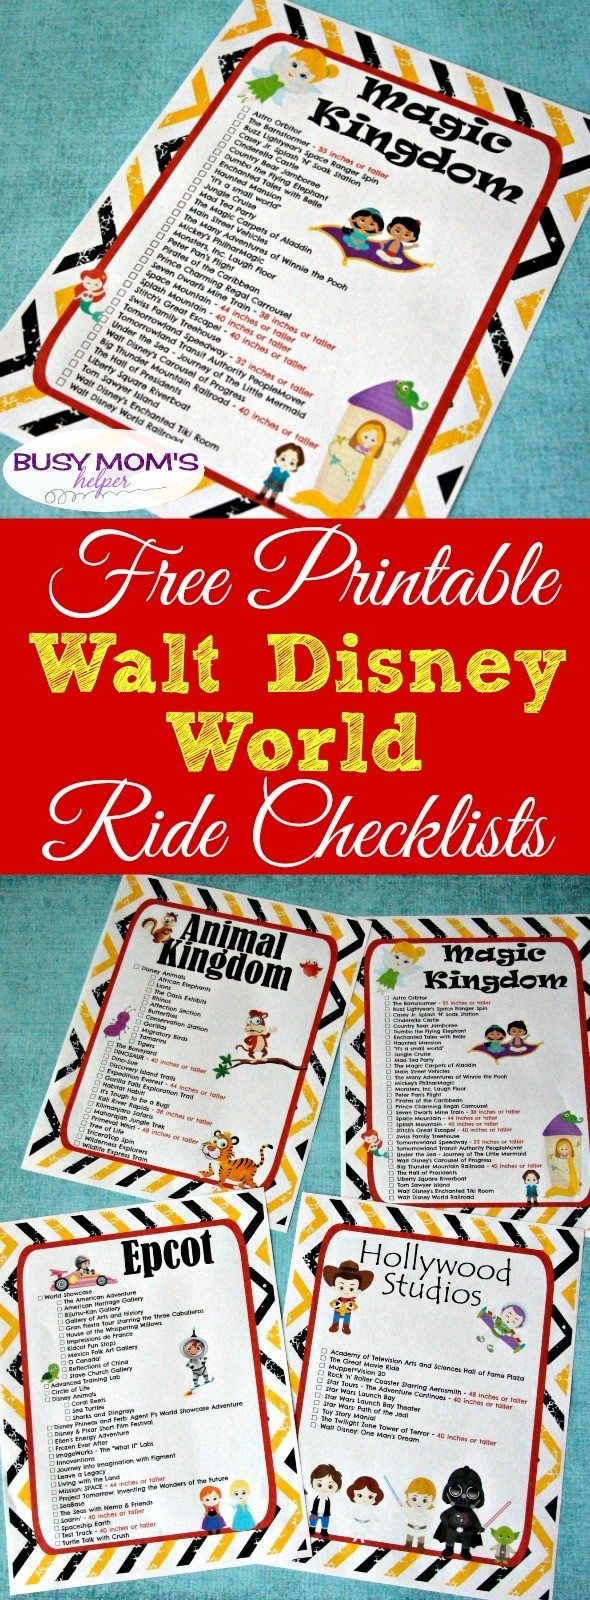 Free Printable Walt Disney World Ride Checklists  Printable Disney World Attractions List